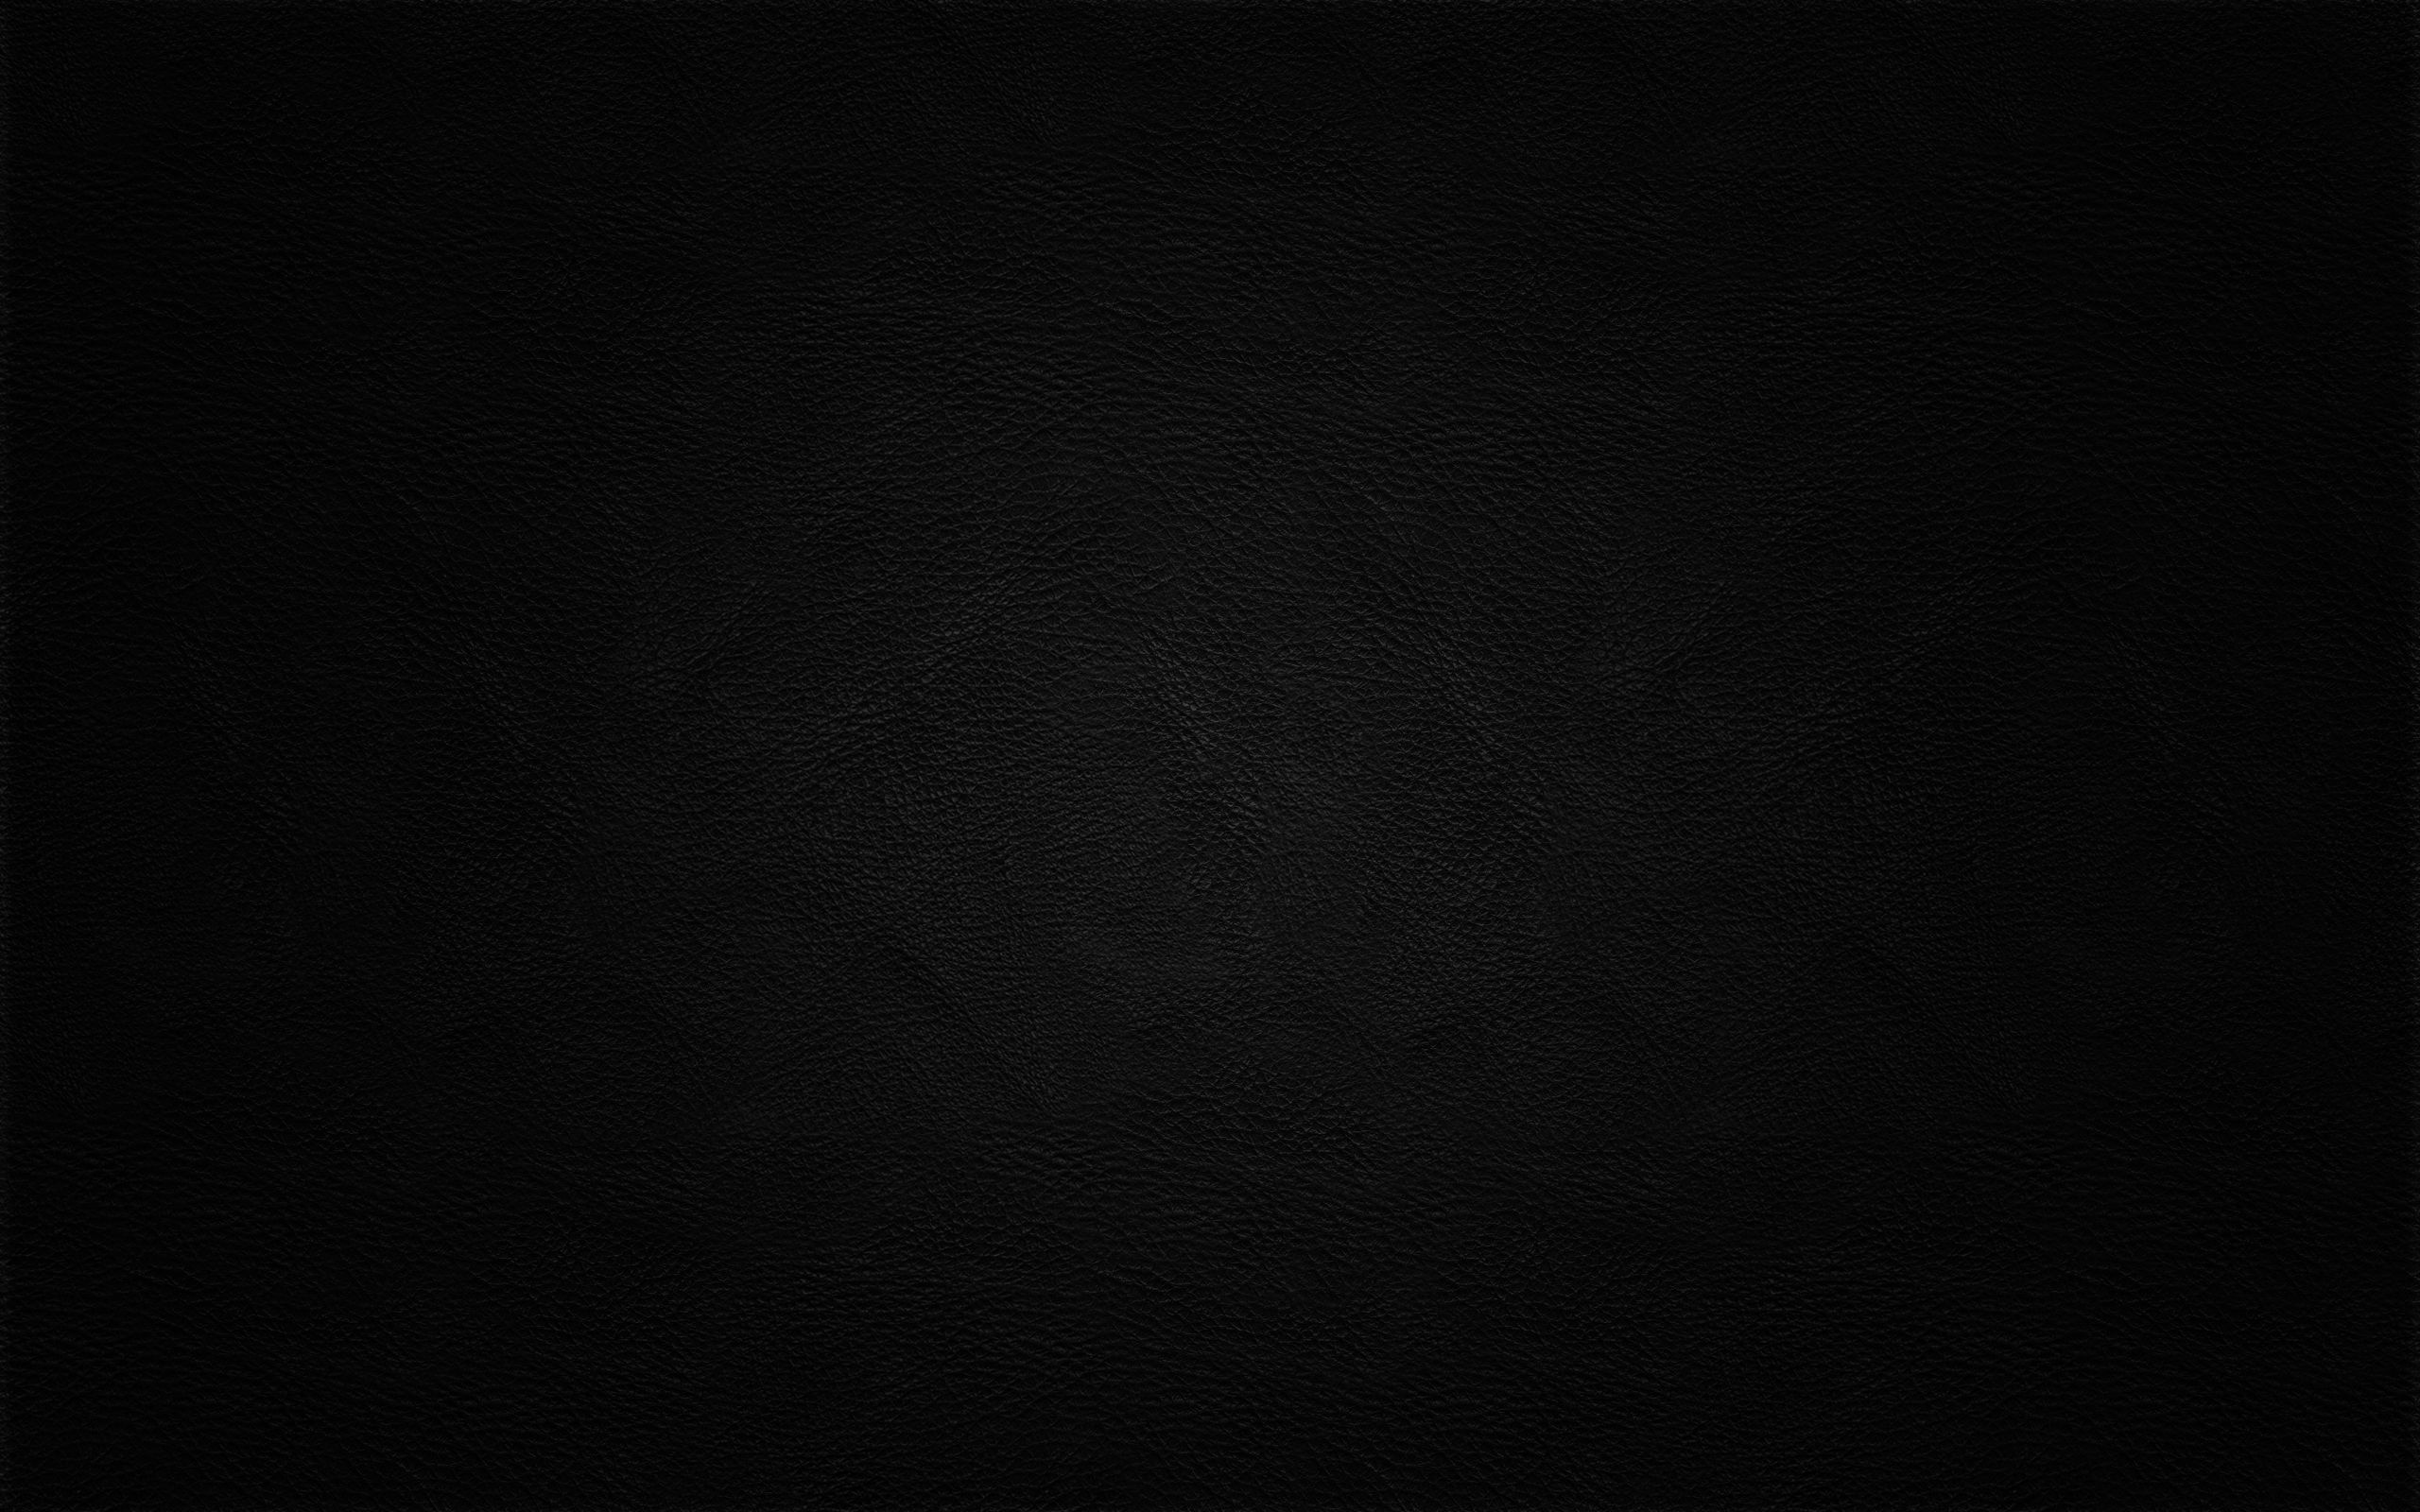 Black wallpaper hd black wallpaper hd voltagebd Images